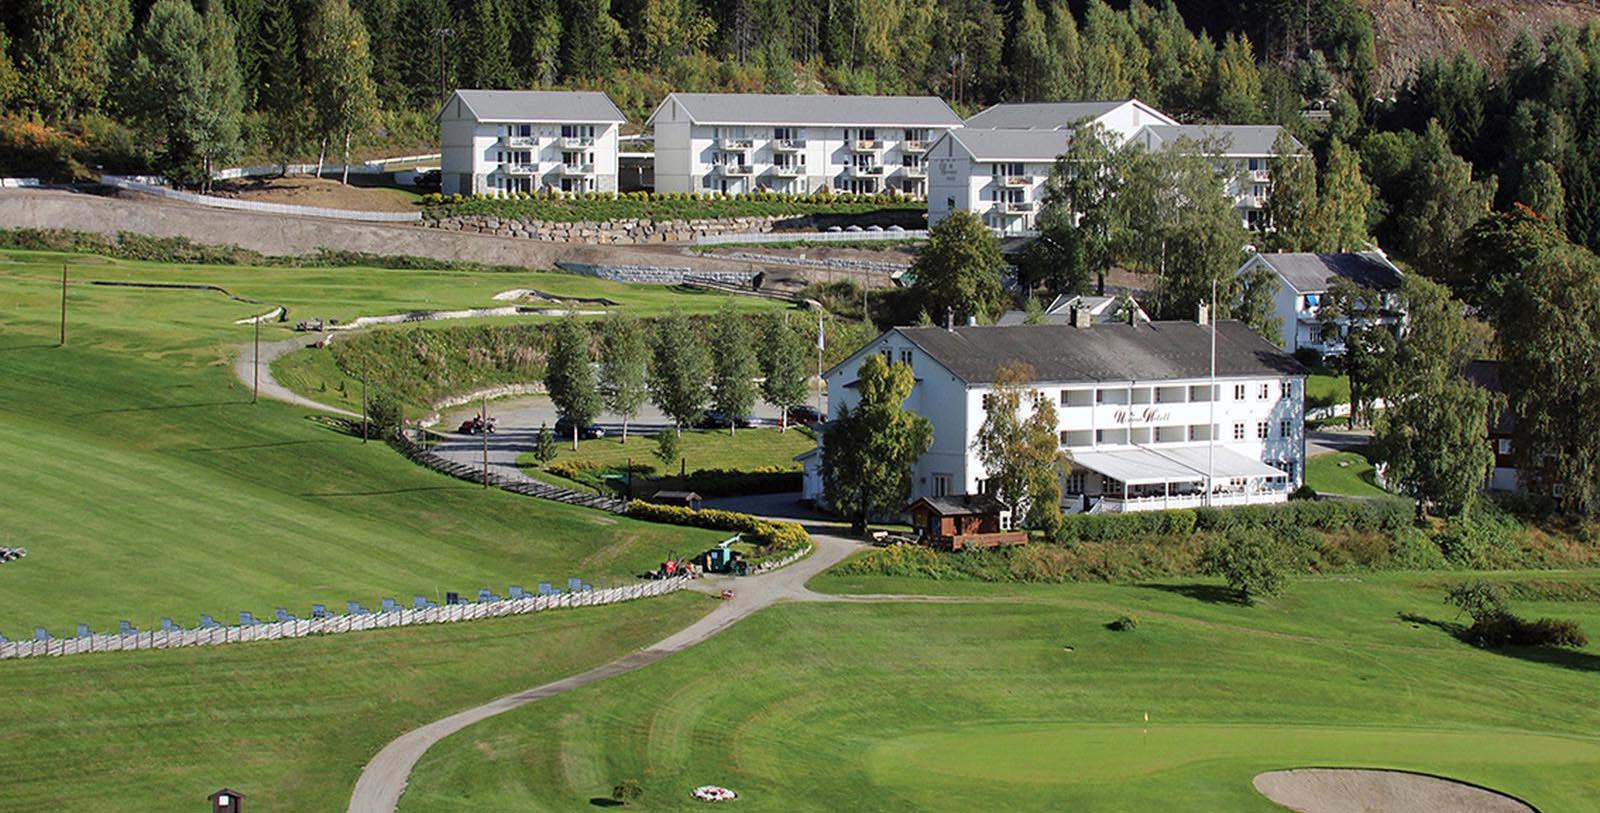 Image of Aerial View of Hotel Nermo Hotell & Apartments, 1442, Member of Historic Hotels Worldwide, in Oyer, Norway, Overview